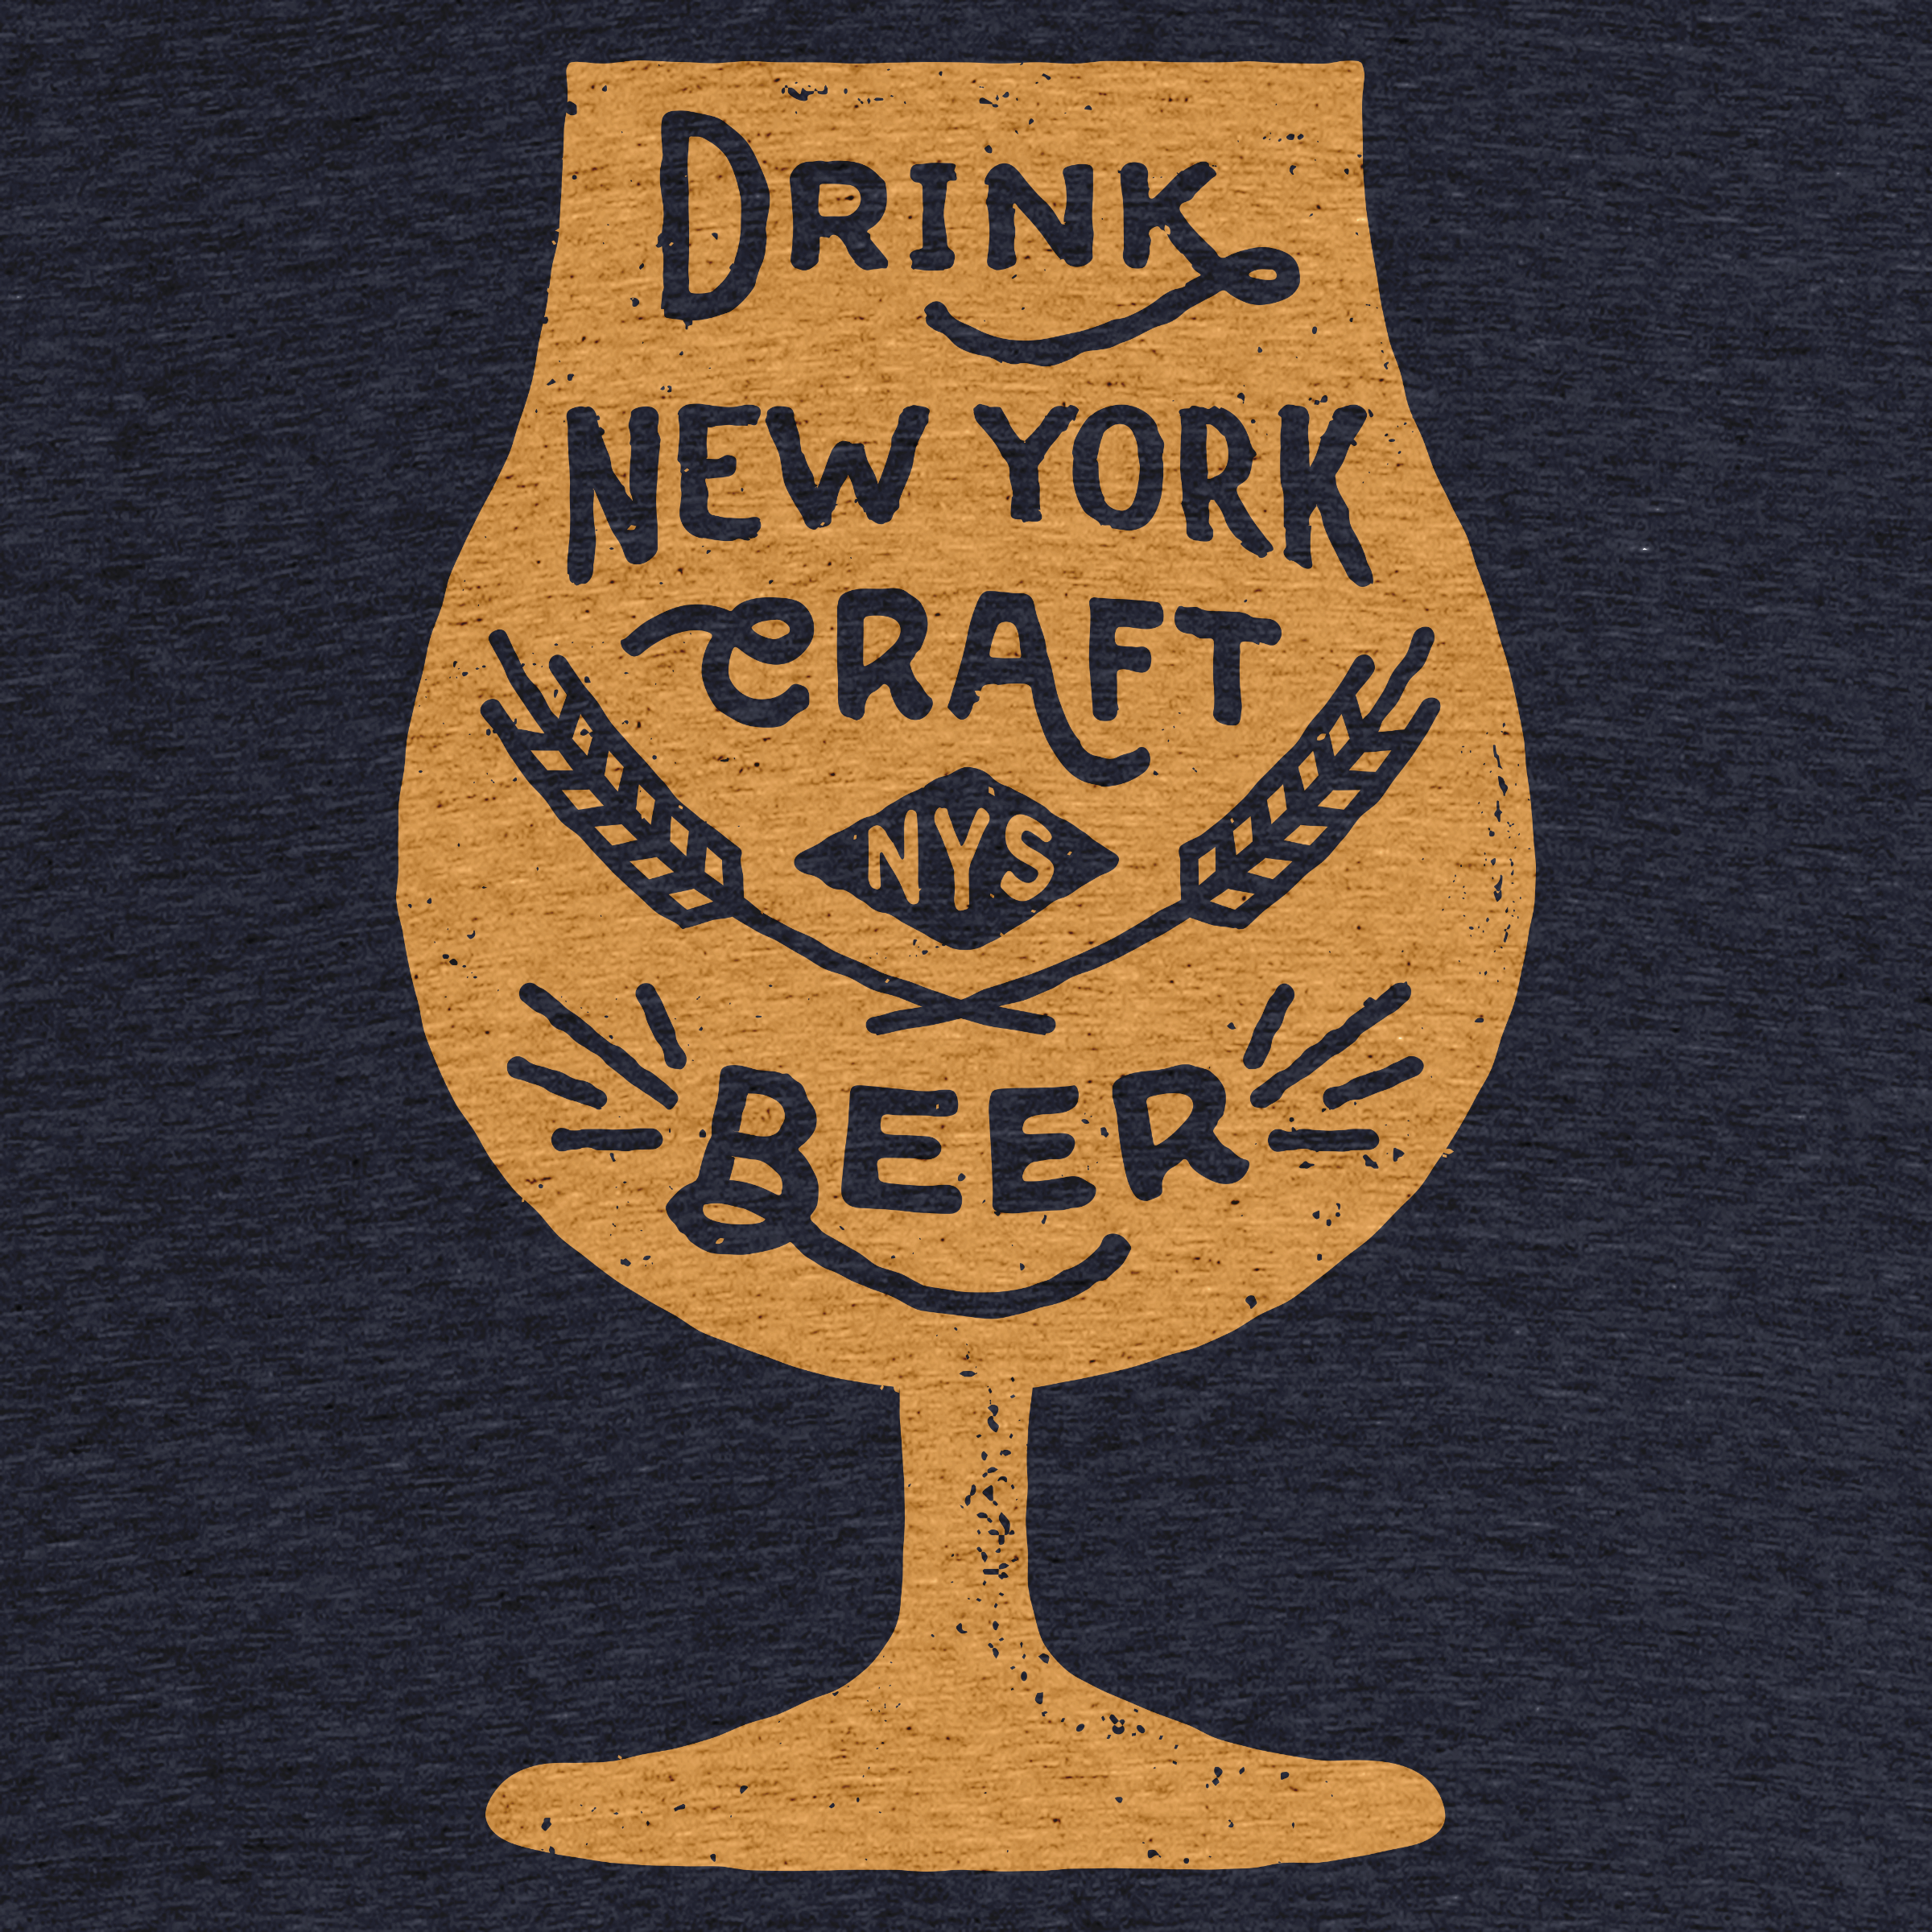 Drink NY Craft Beer